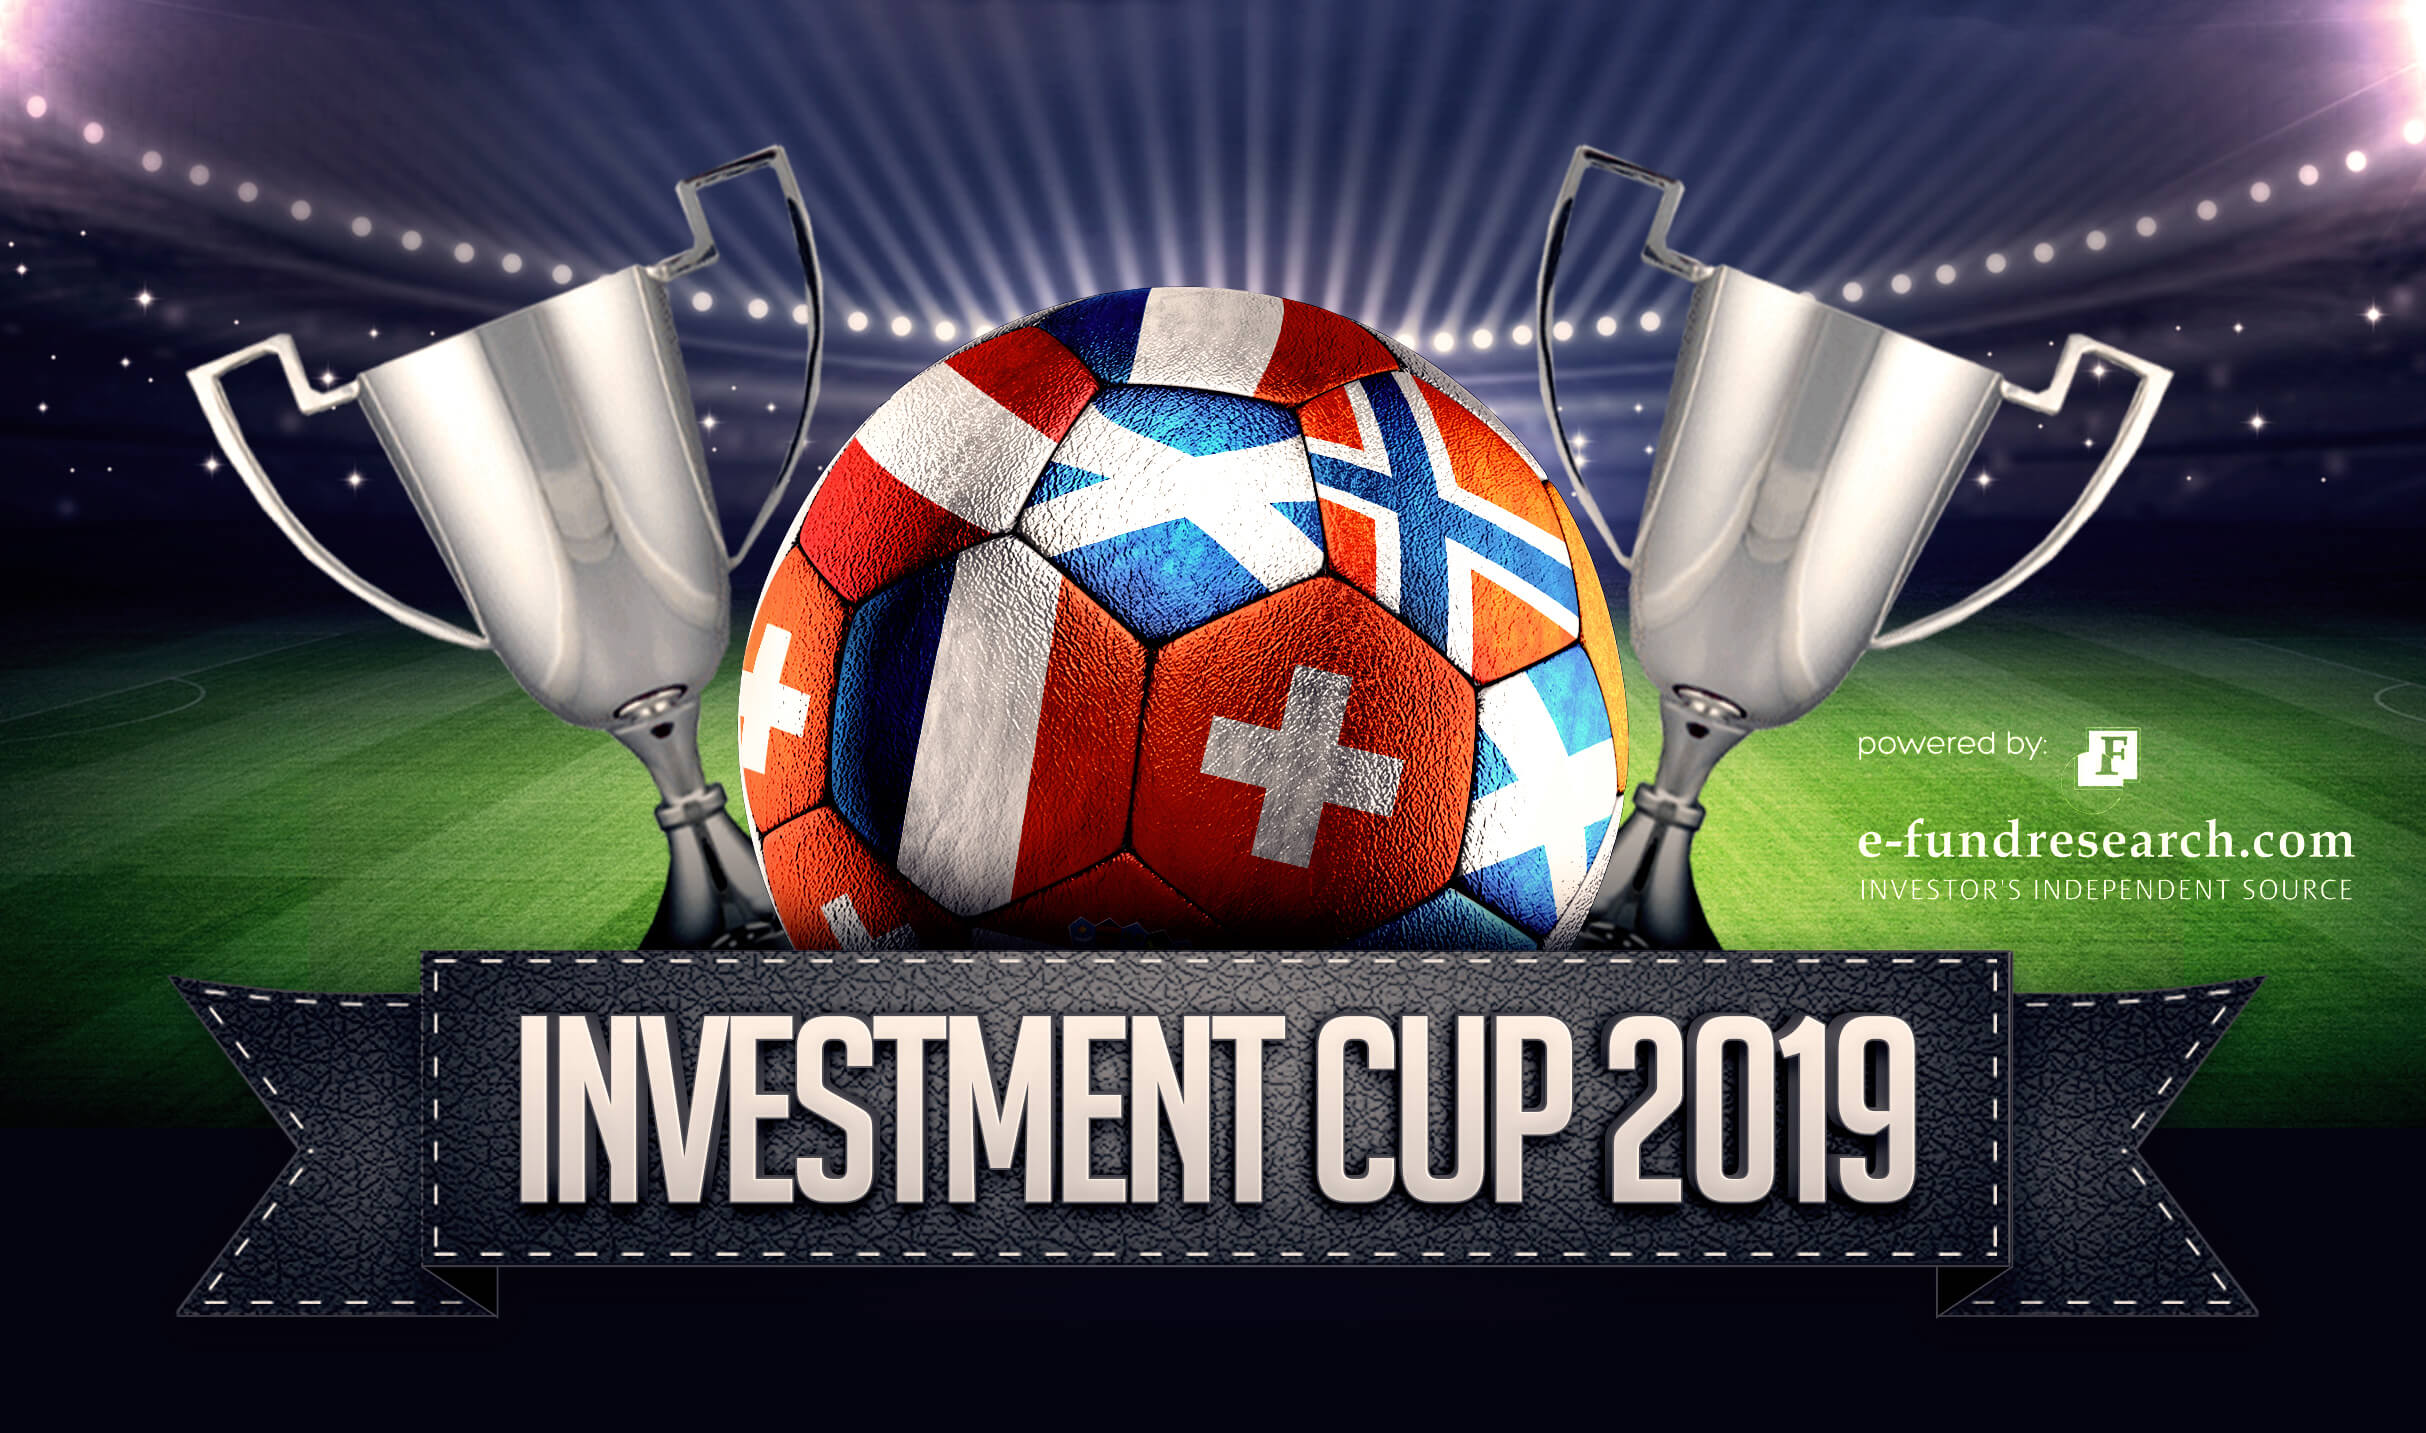 Investment Cup 2019